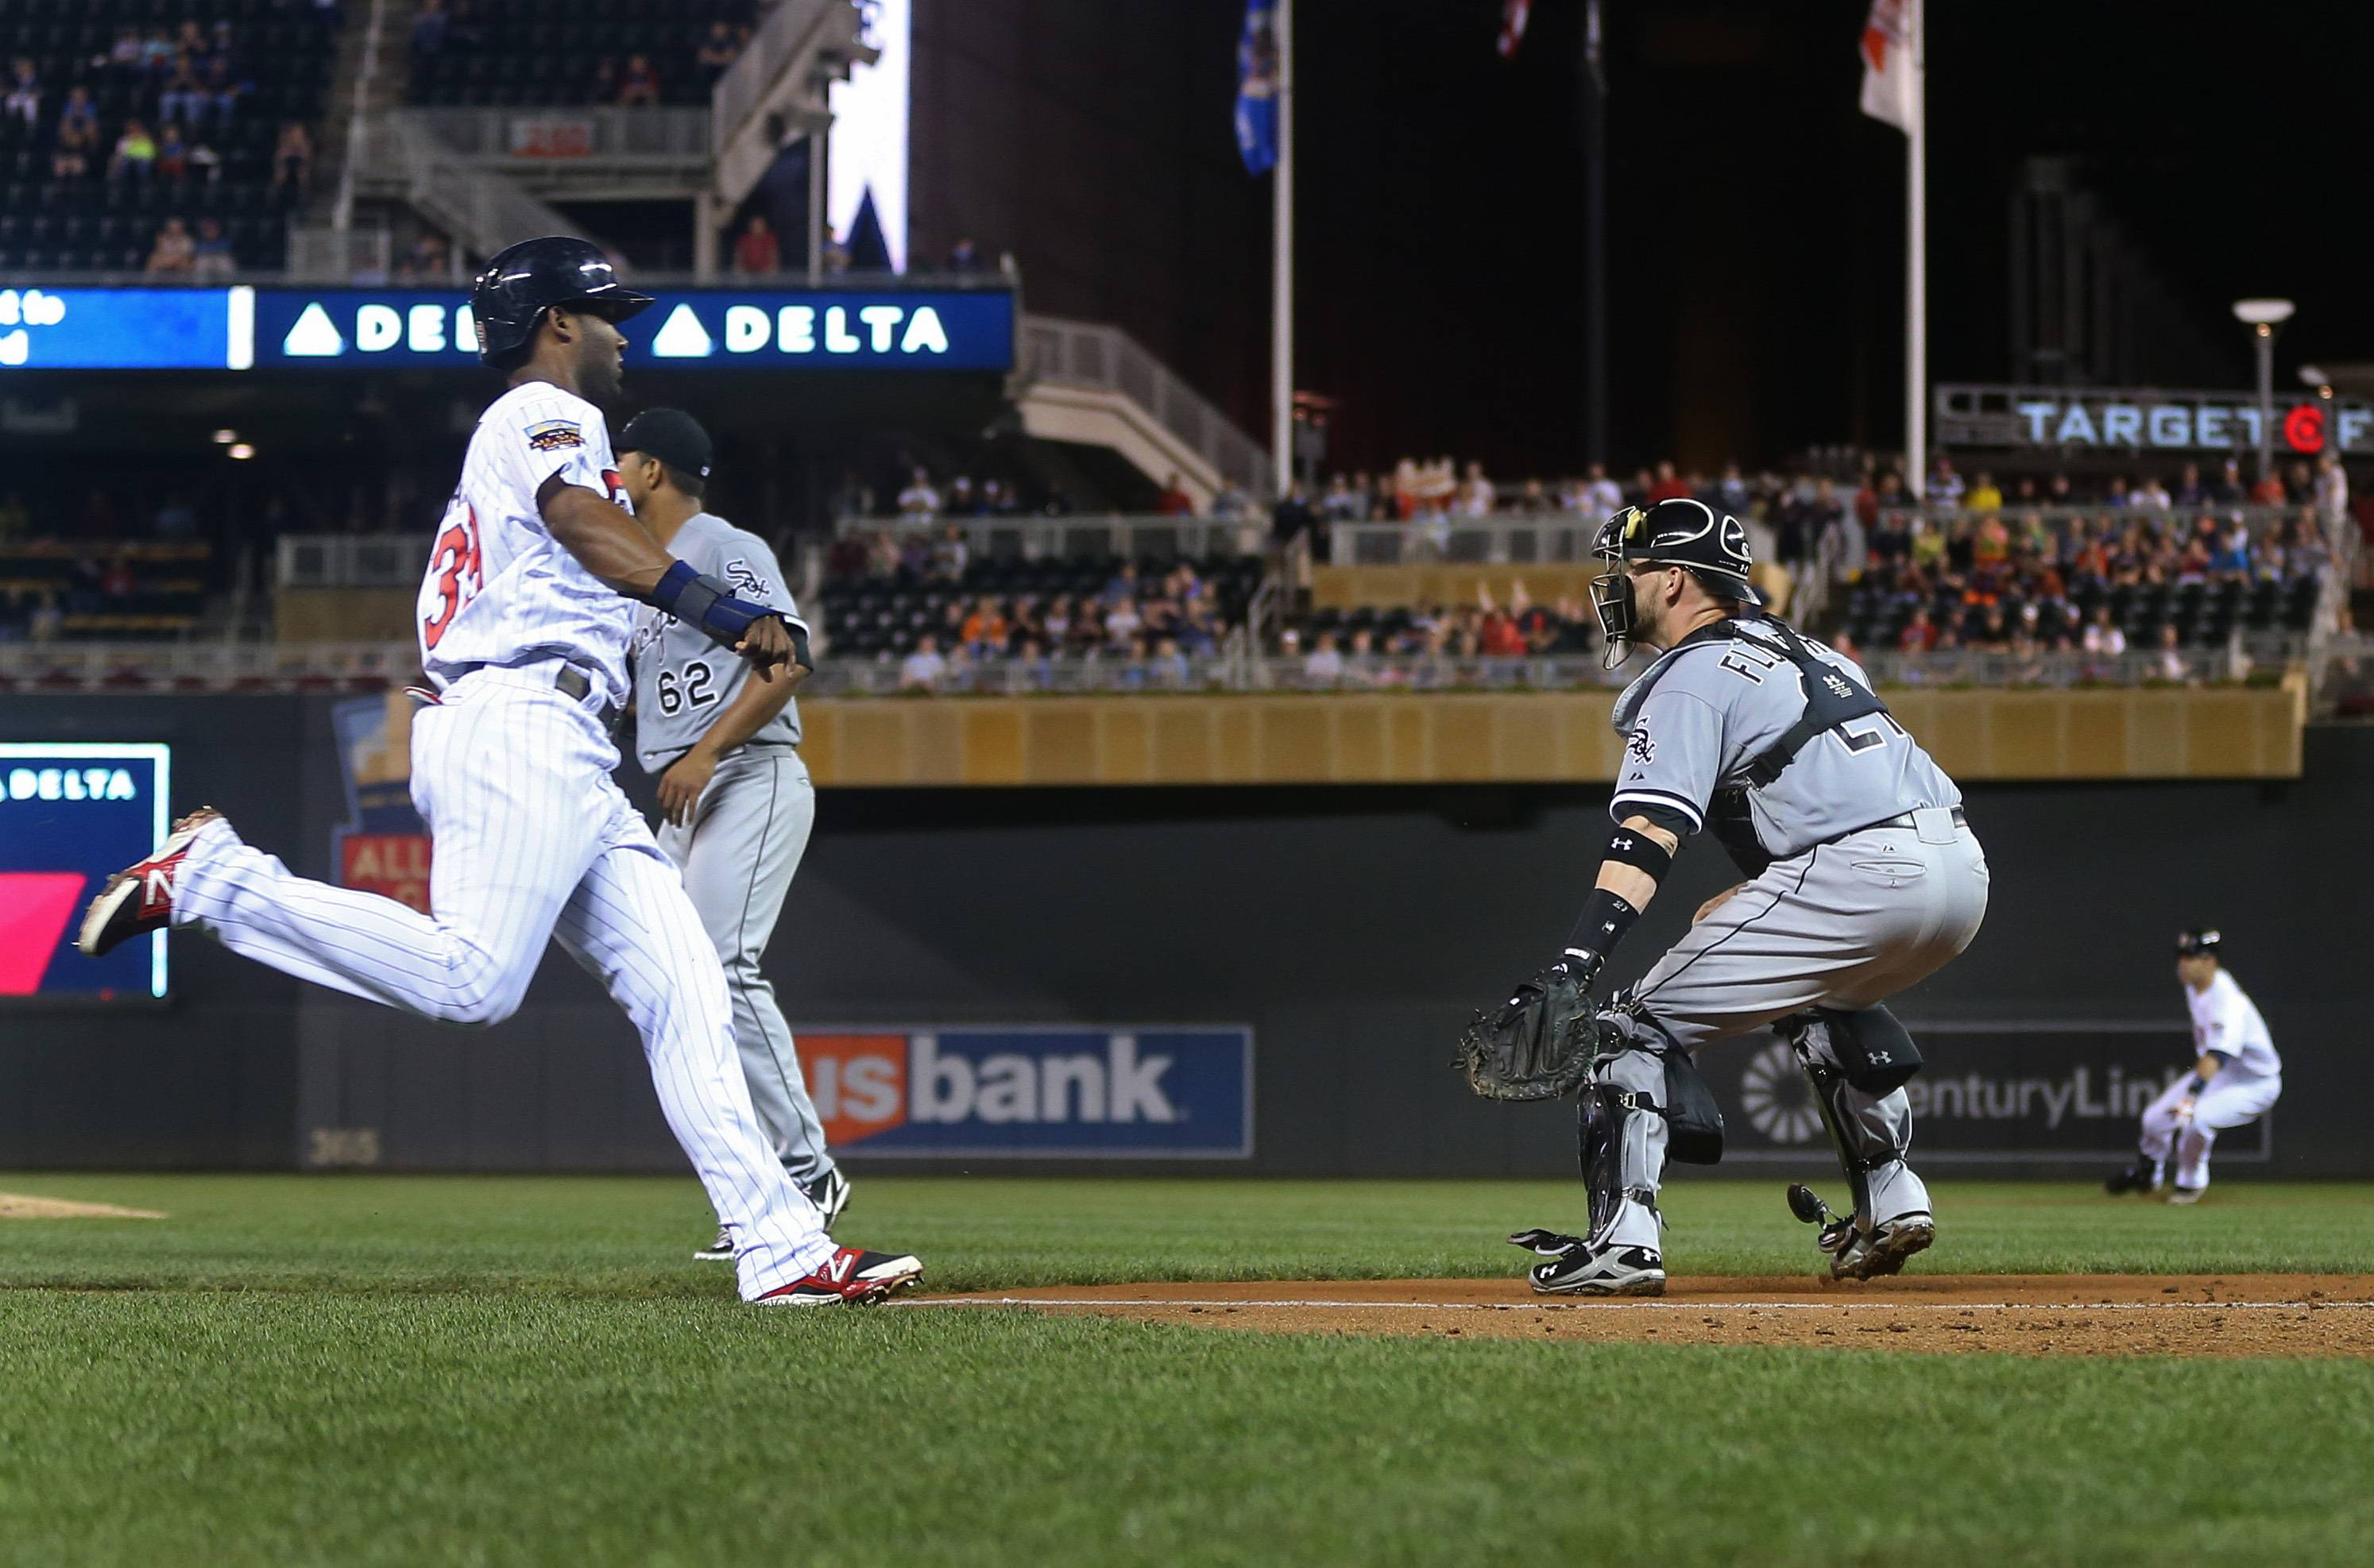 Joe Mauer drove in two runs, including the go-ahead double in the eighth inning, to push the Minnesota Twins past the White Sox 4-2 Thursday night.